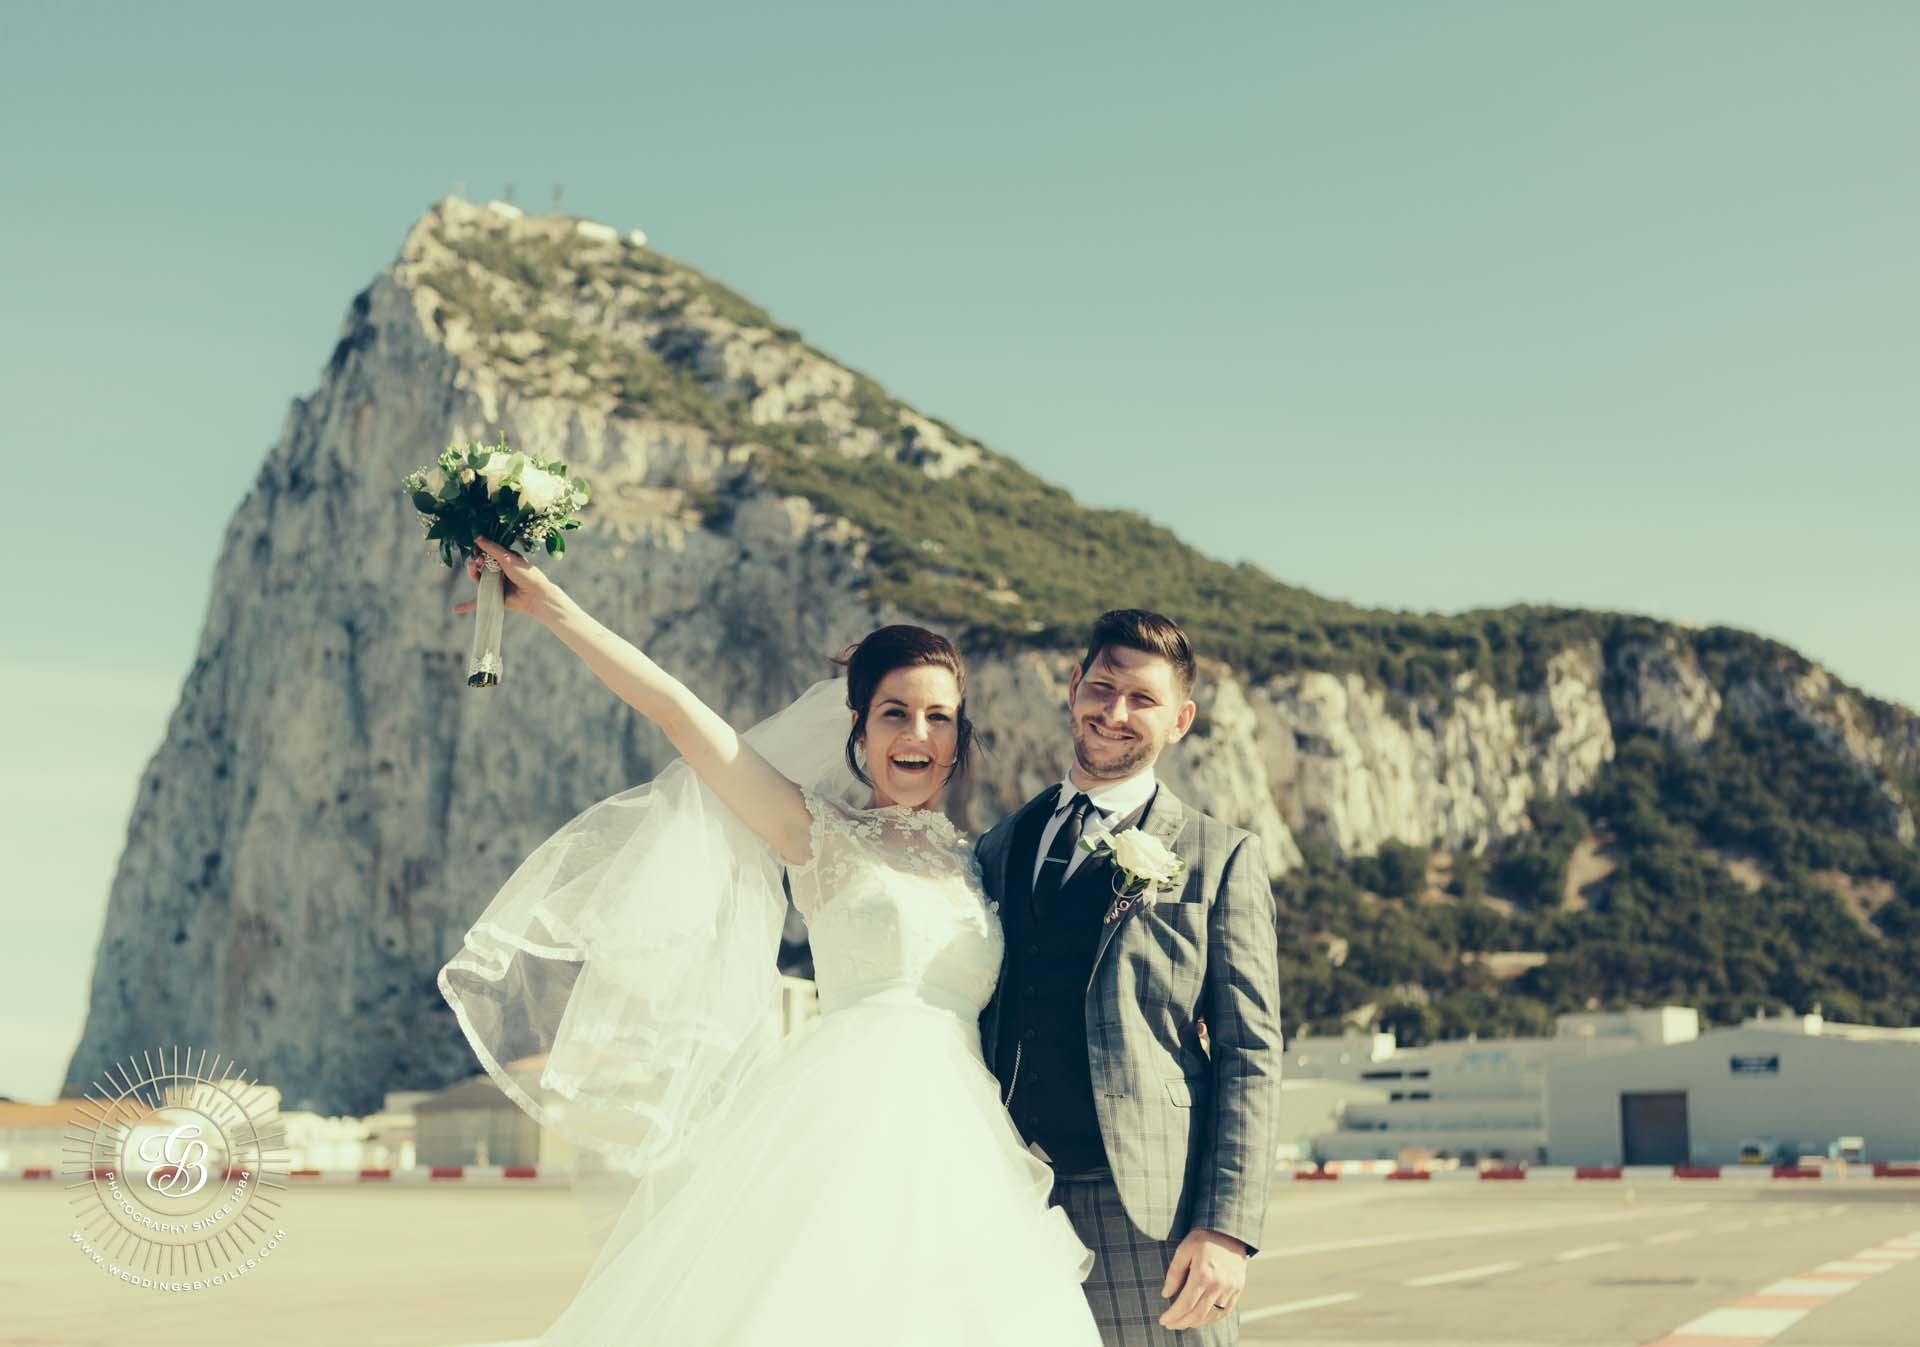 bride and groom in fron of the rock on the run way